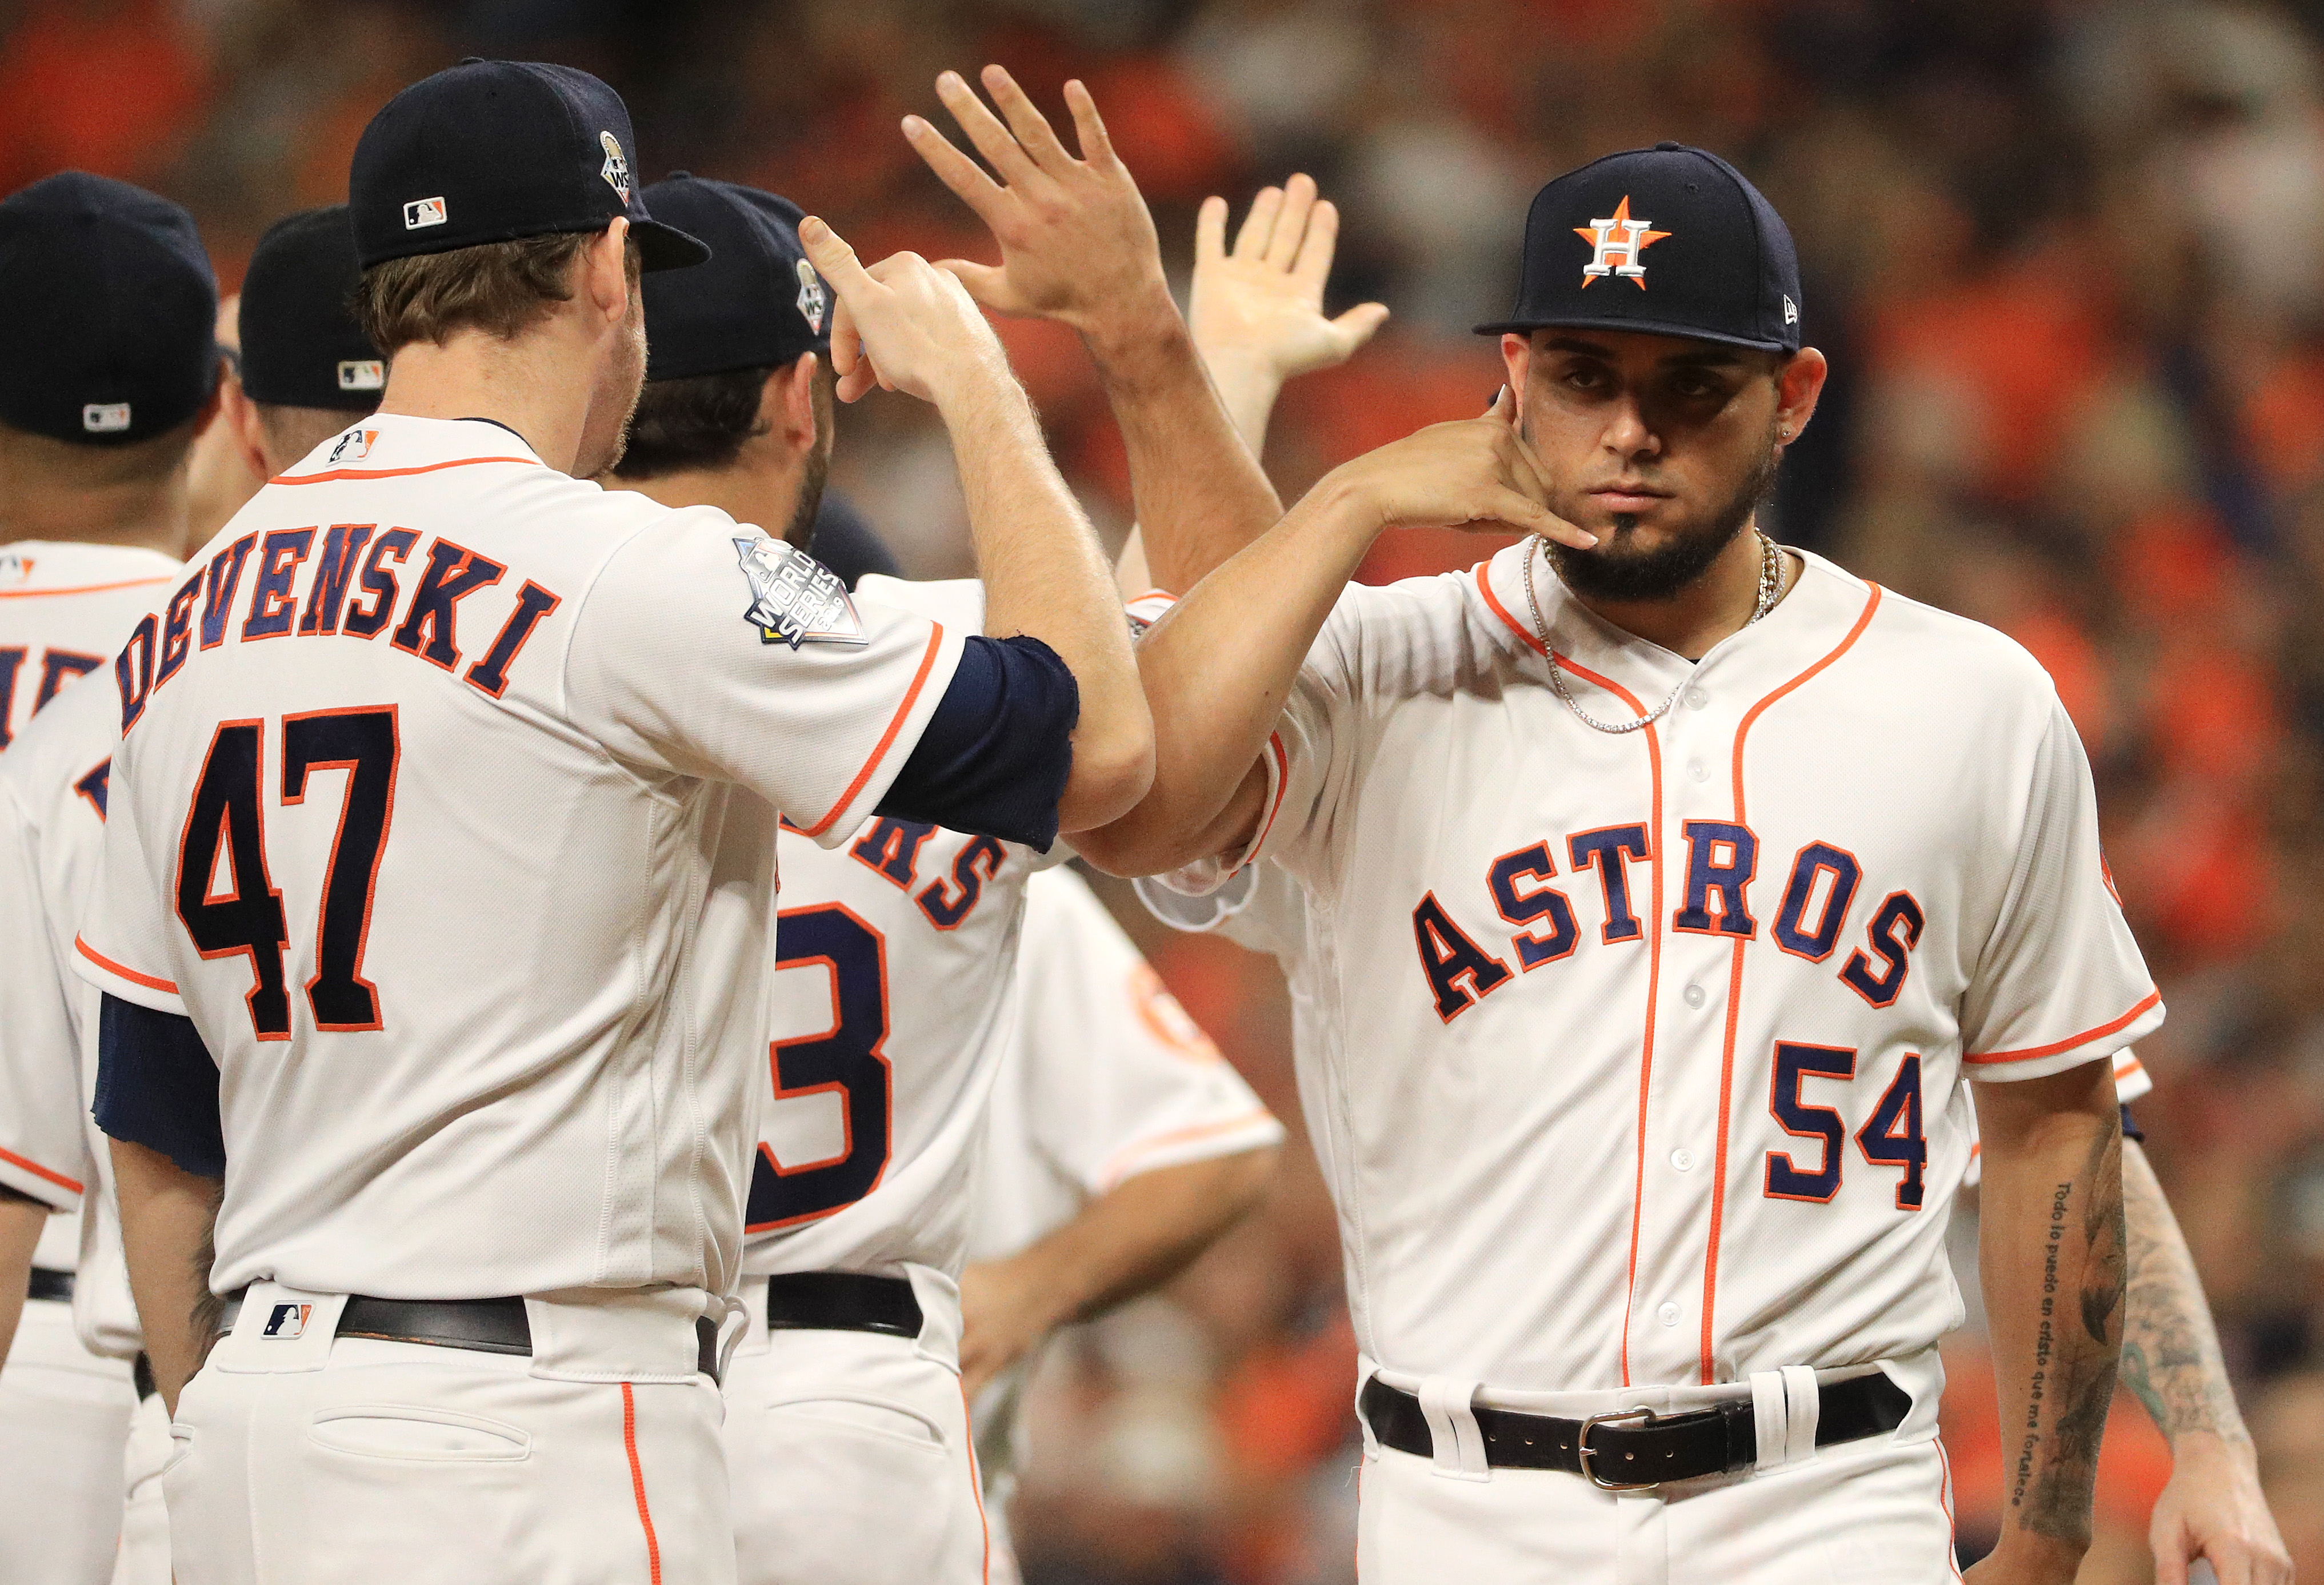 Roberto Osuna (number 54) of the Houston Astros baseball team high-fives his teammates on the field.